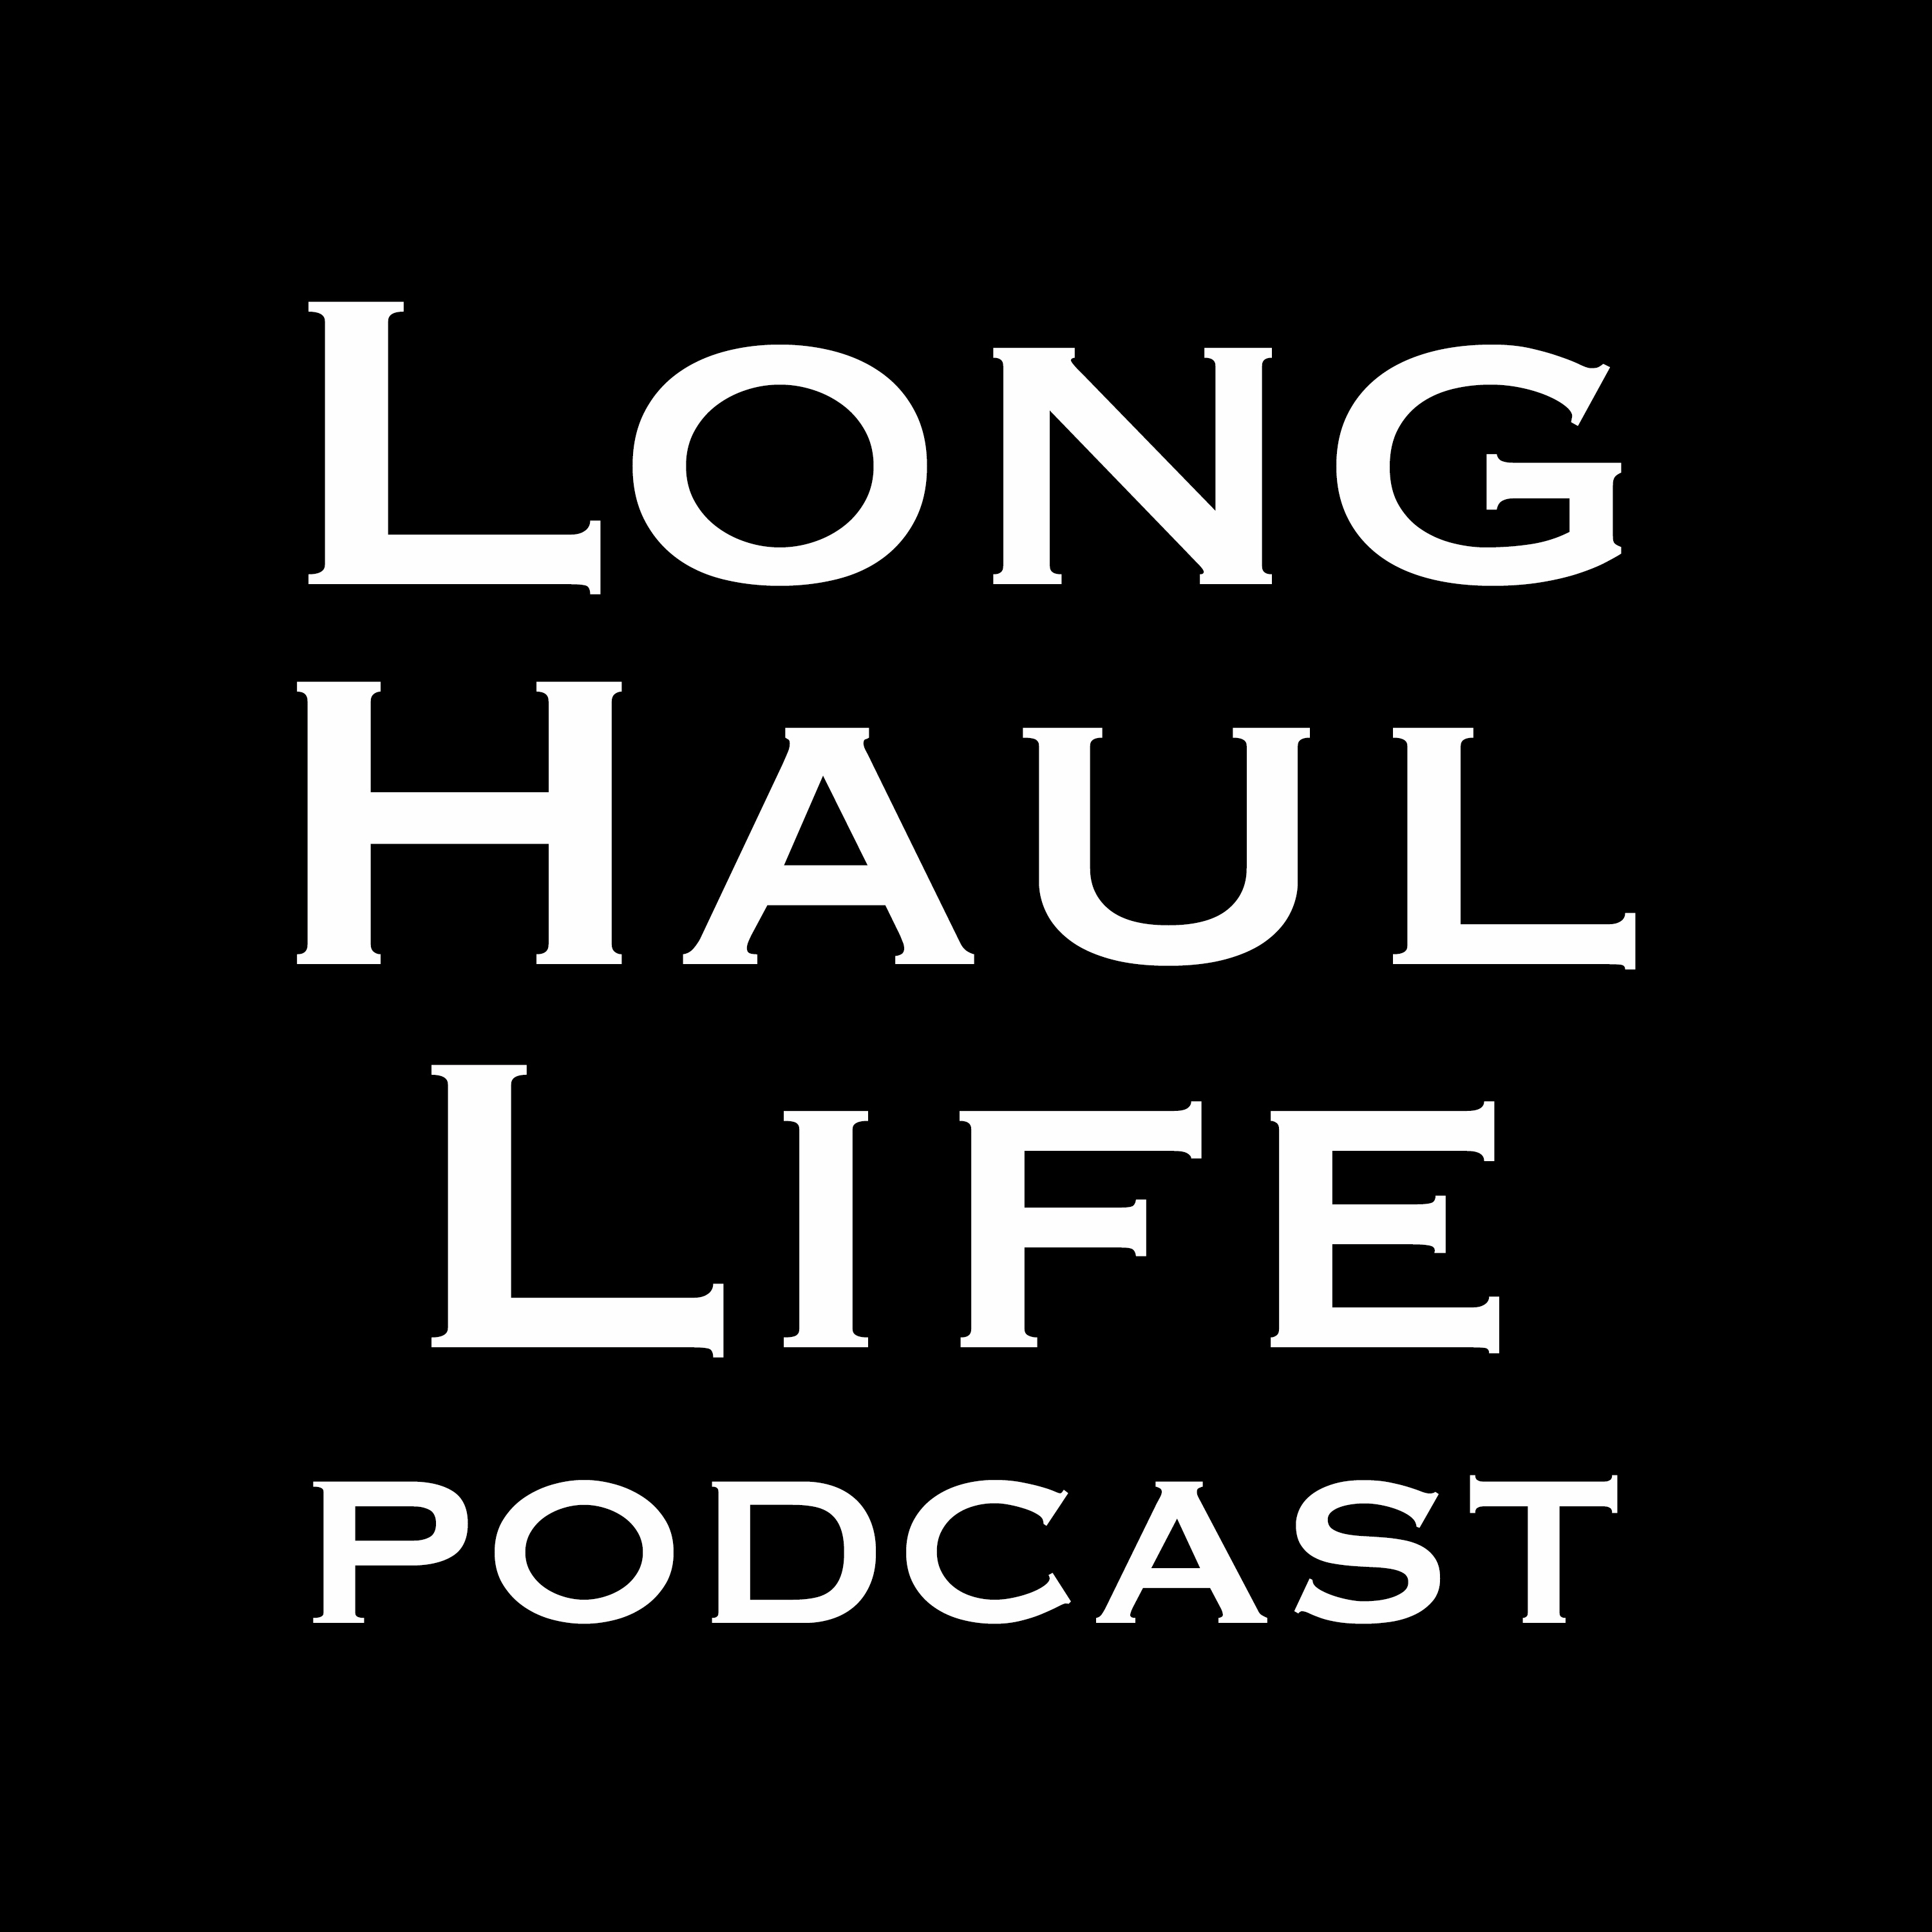 The Long Haul Life Podcast